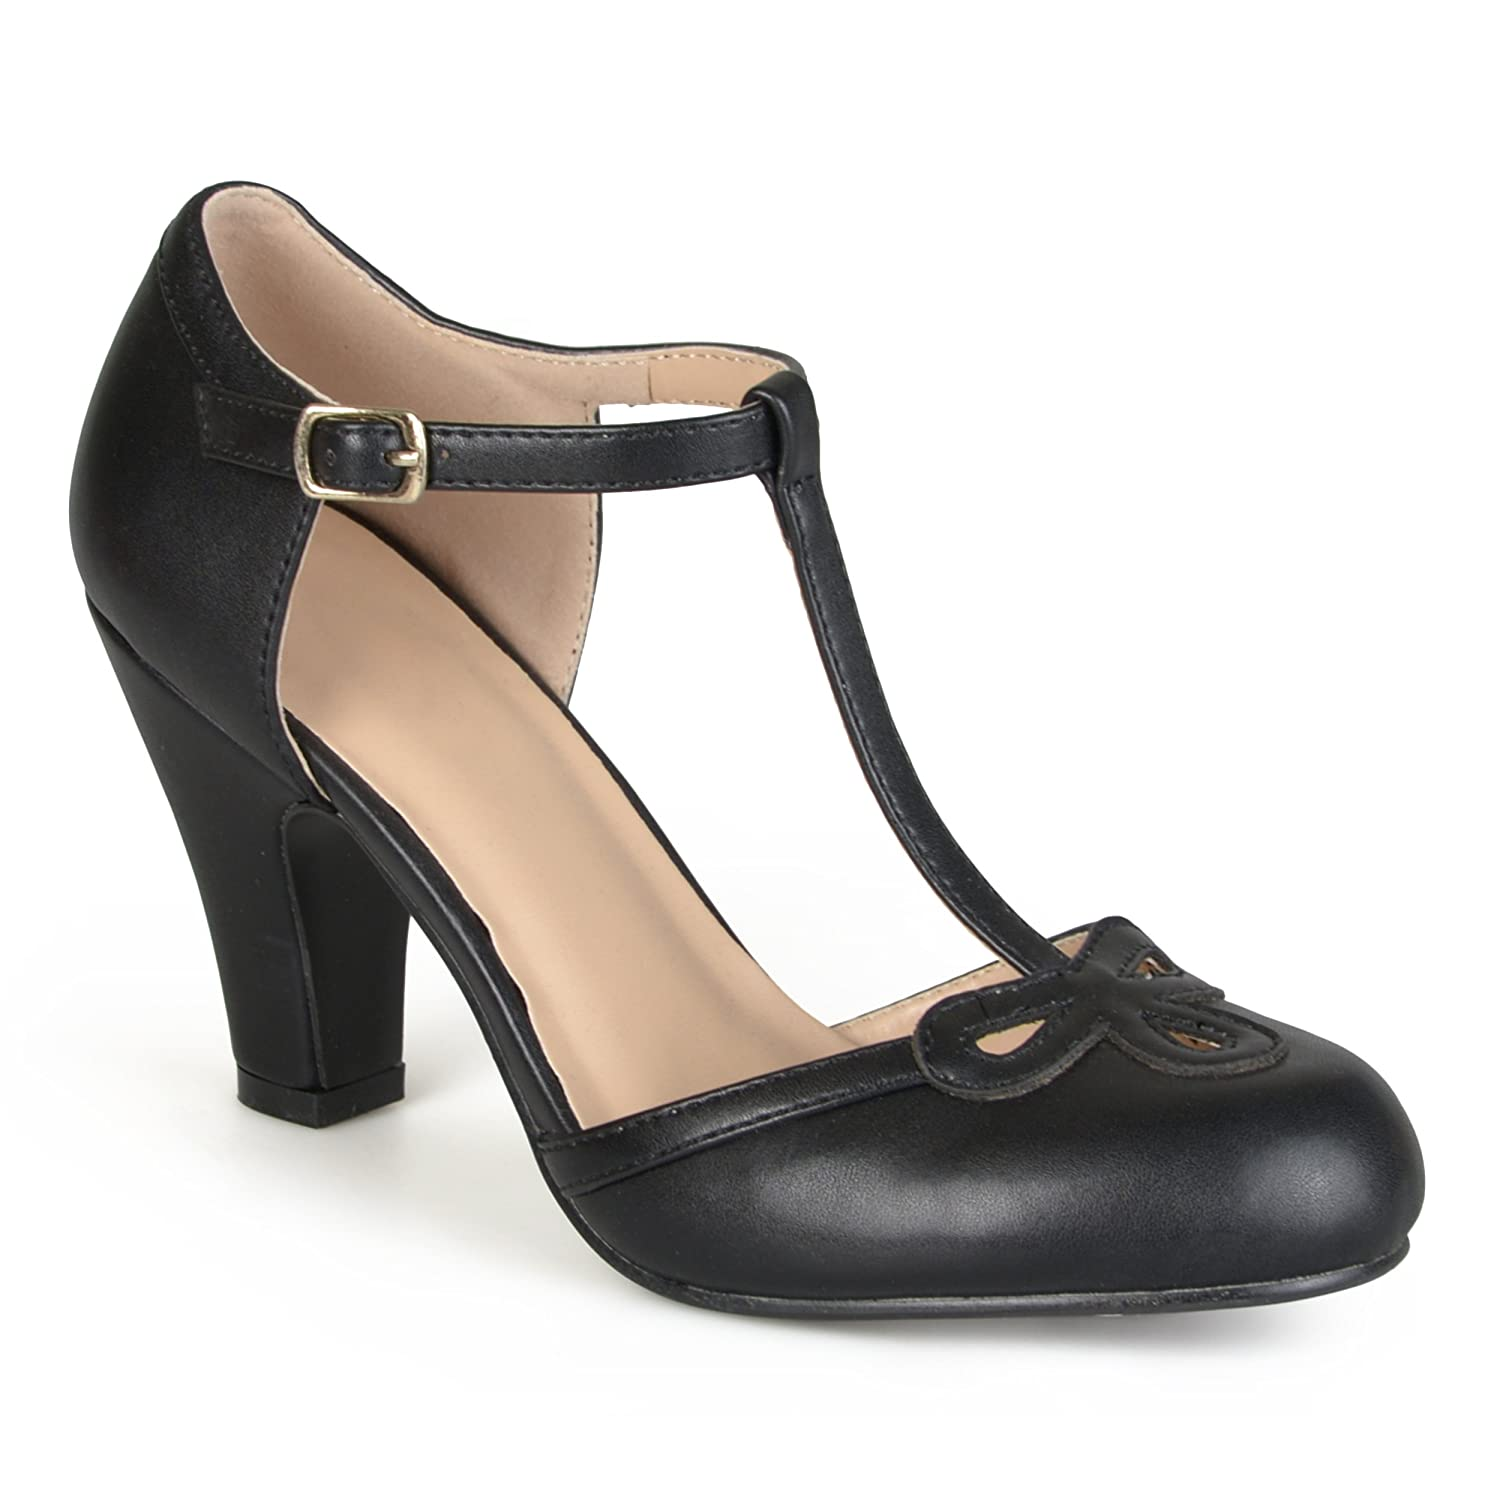 Vintage Inspired Halloween Costumes Brinley Cut Out Round Toe T-strap Matte Mary Jane Pumps $31.99 AT vintagedancer.com